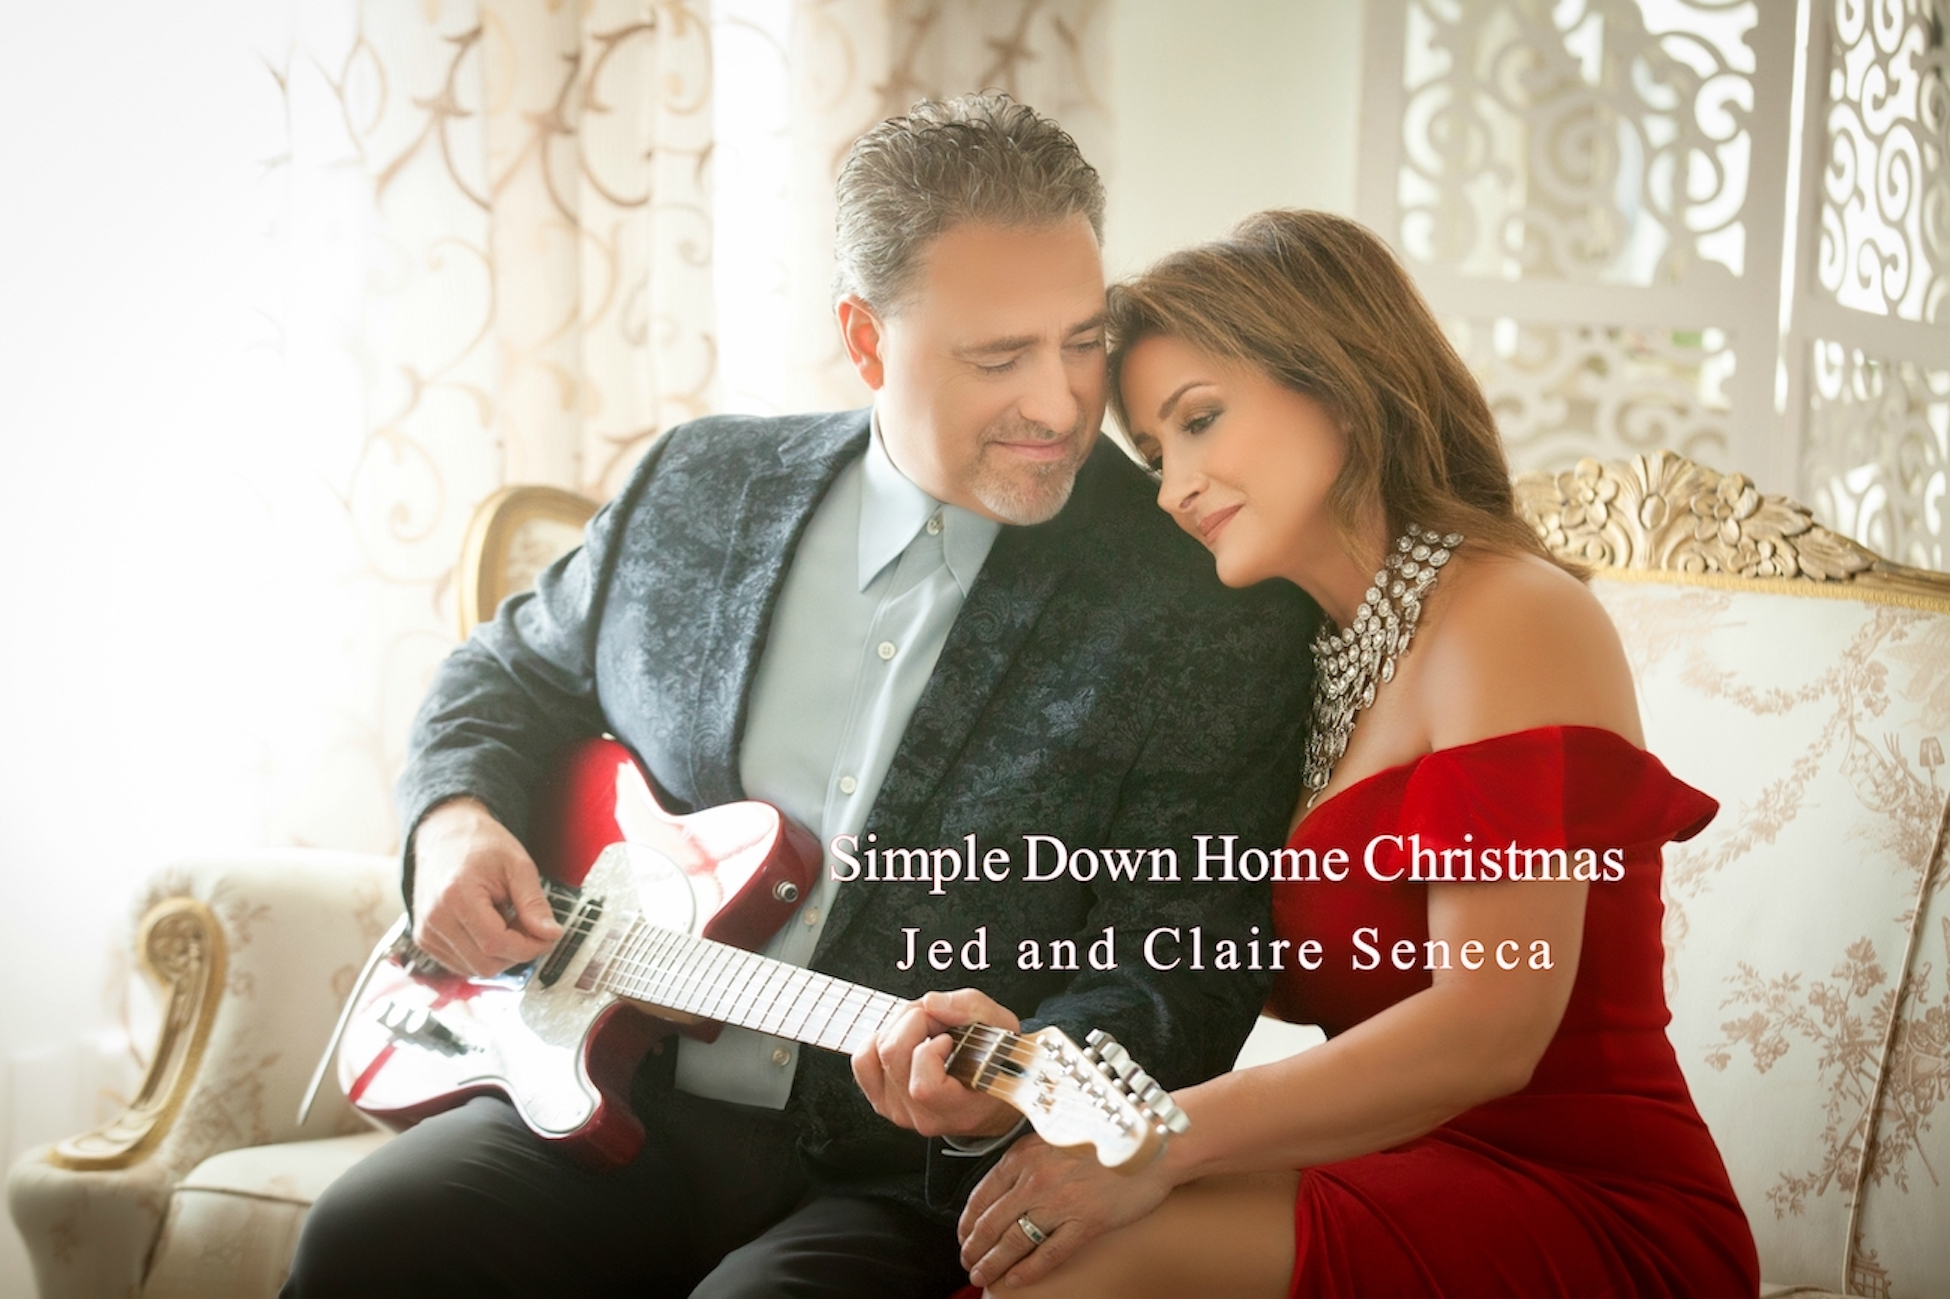 Award-Winning Country Duo Back with Christmas Track